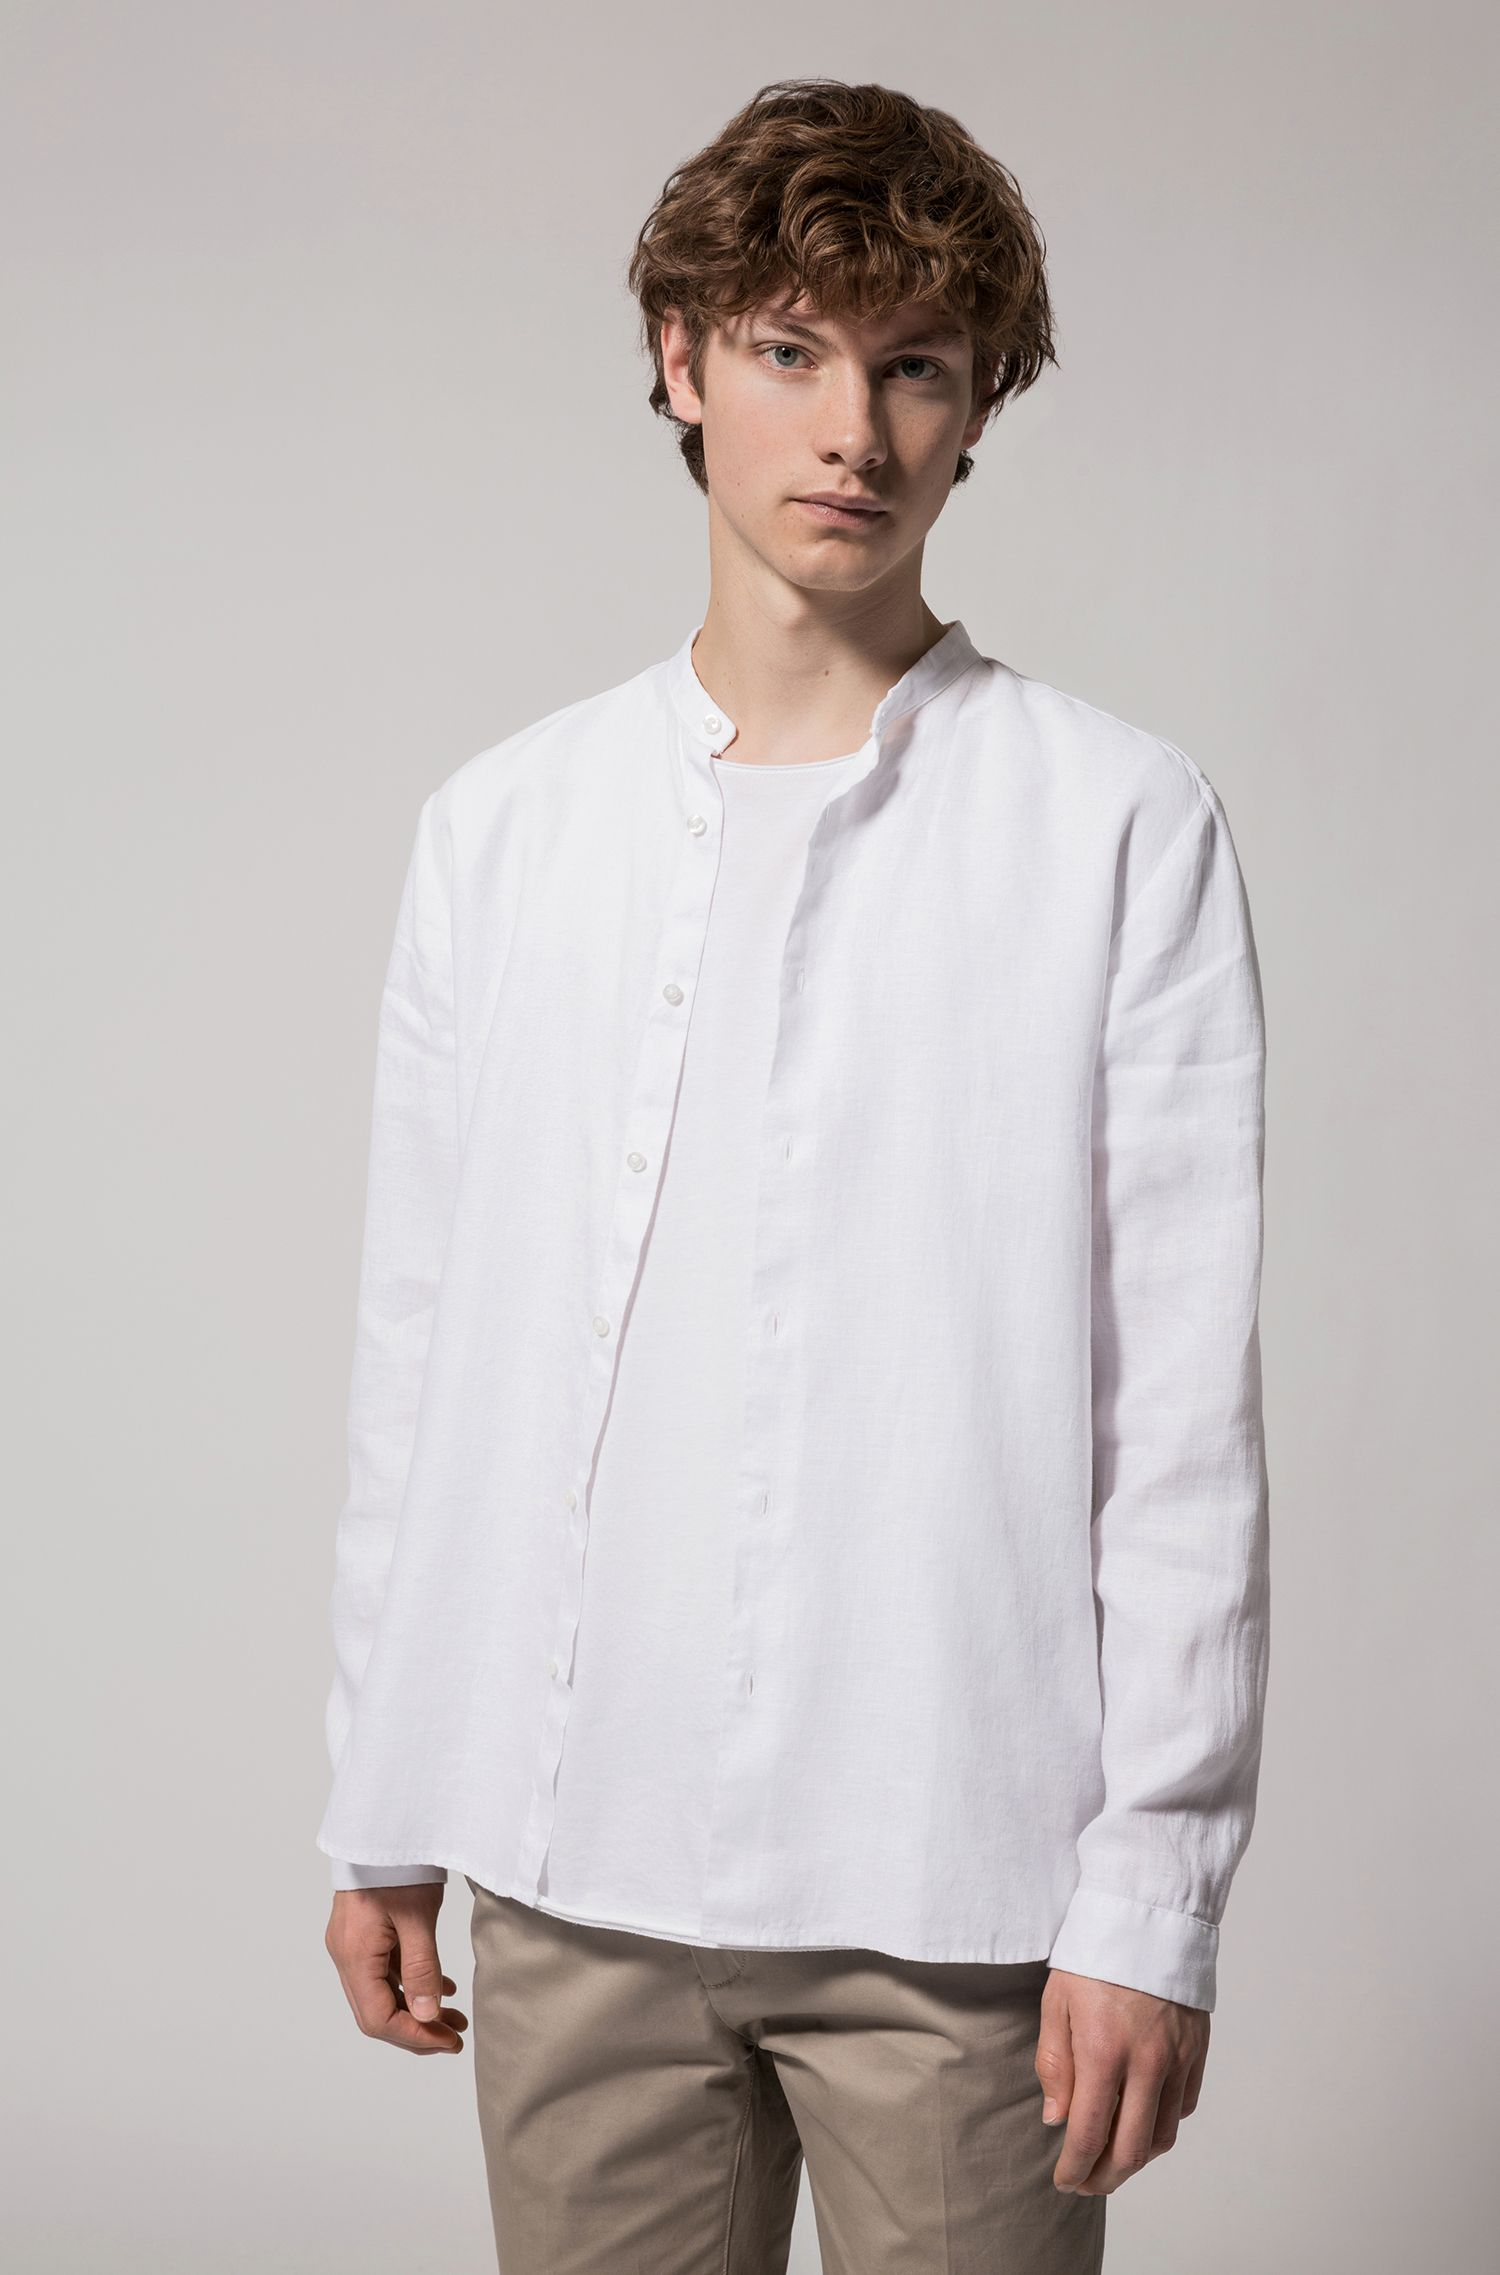 Linen shirt with stand collar